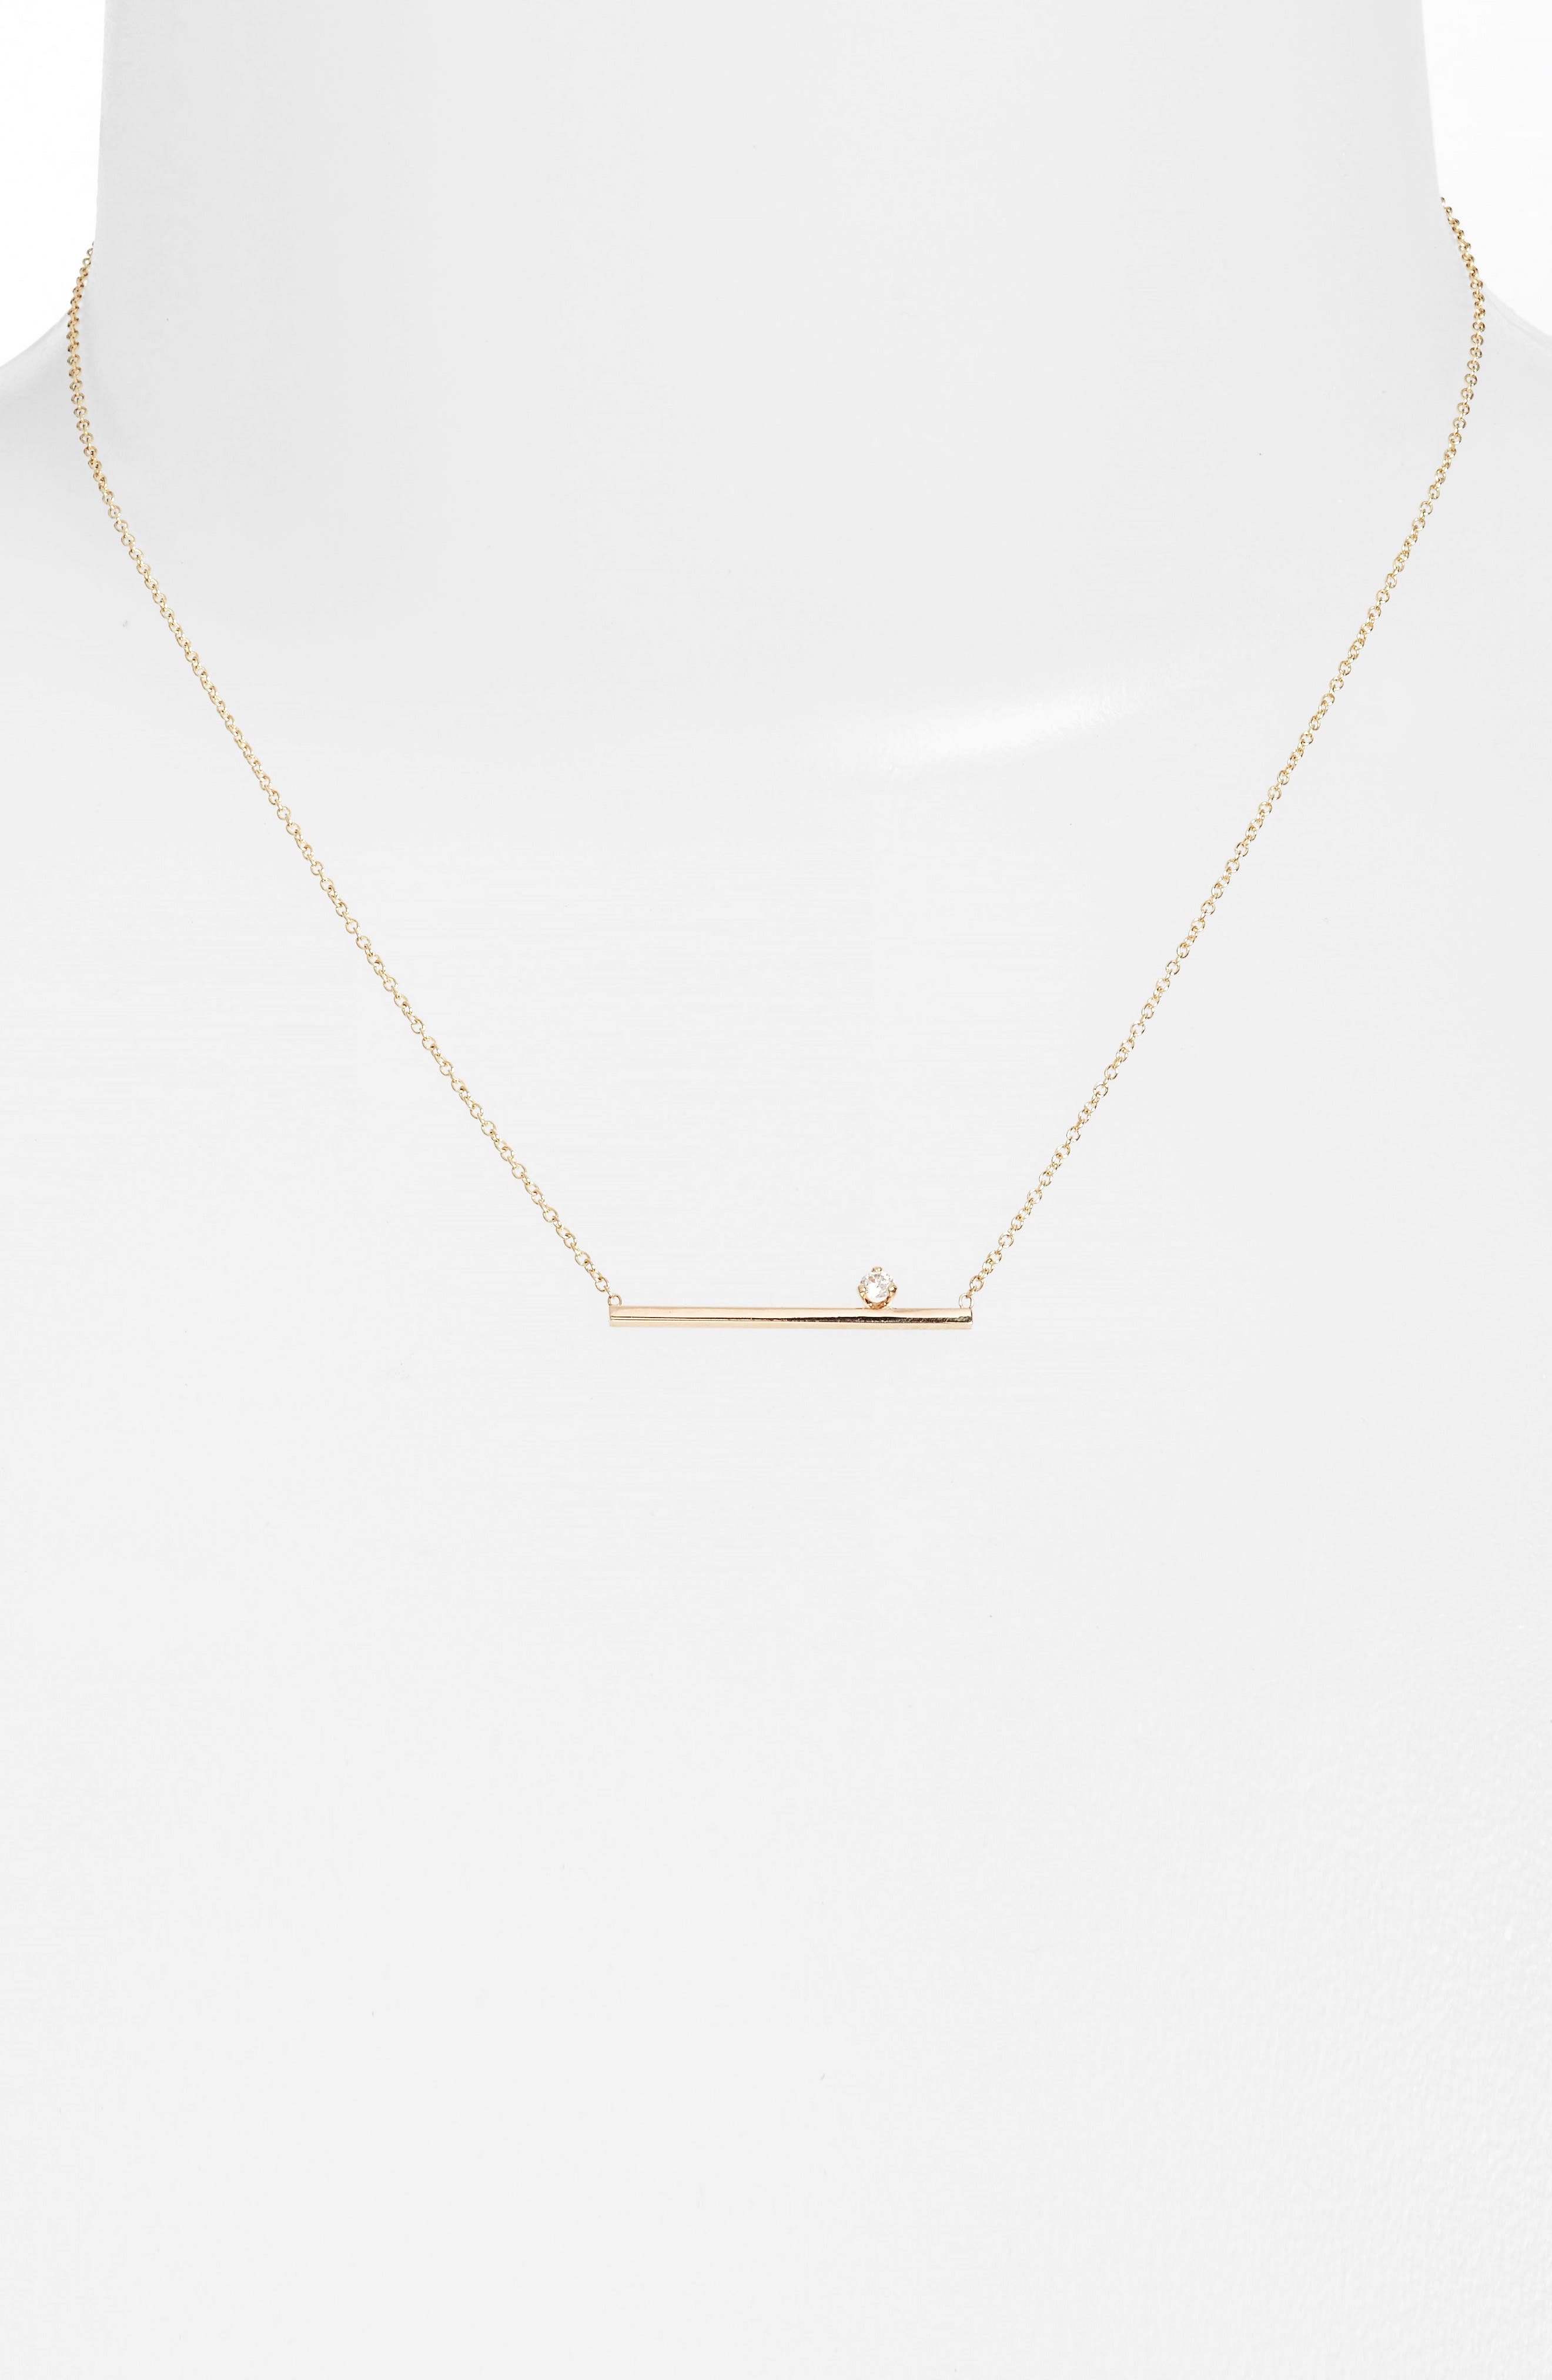 Floating Diamond Pendant Necklace,                         Main,                         color, Yellow Gold